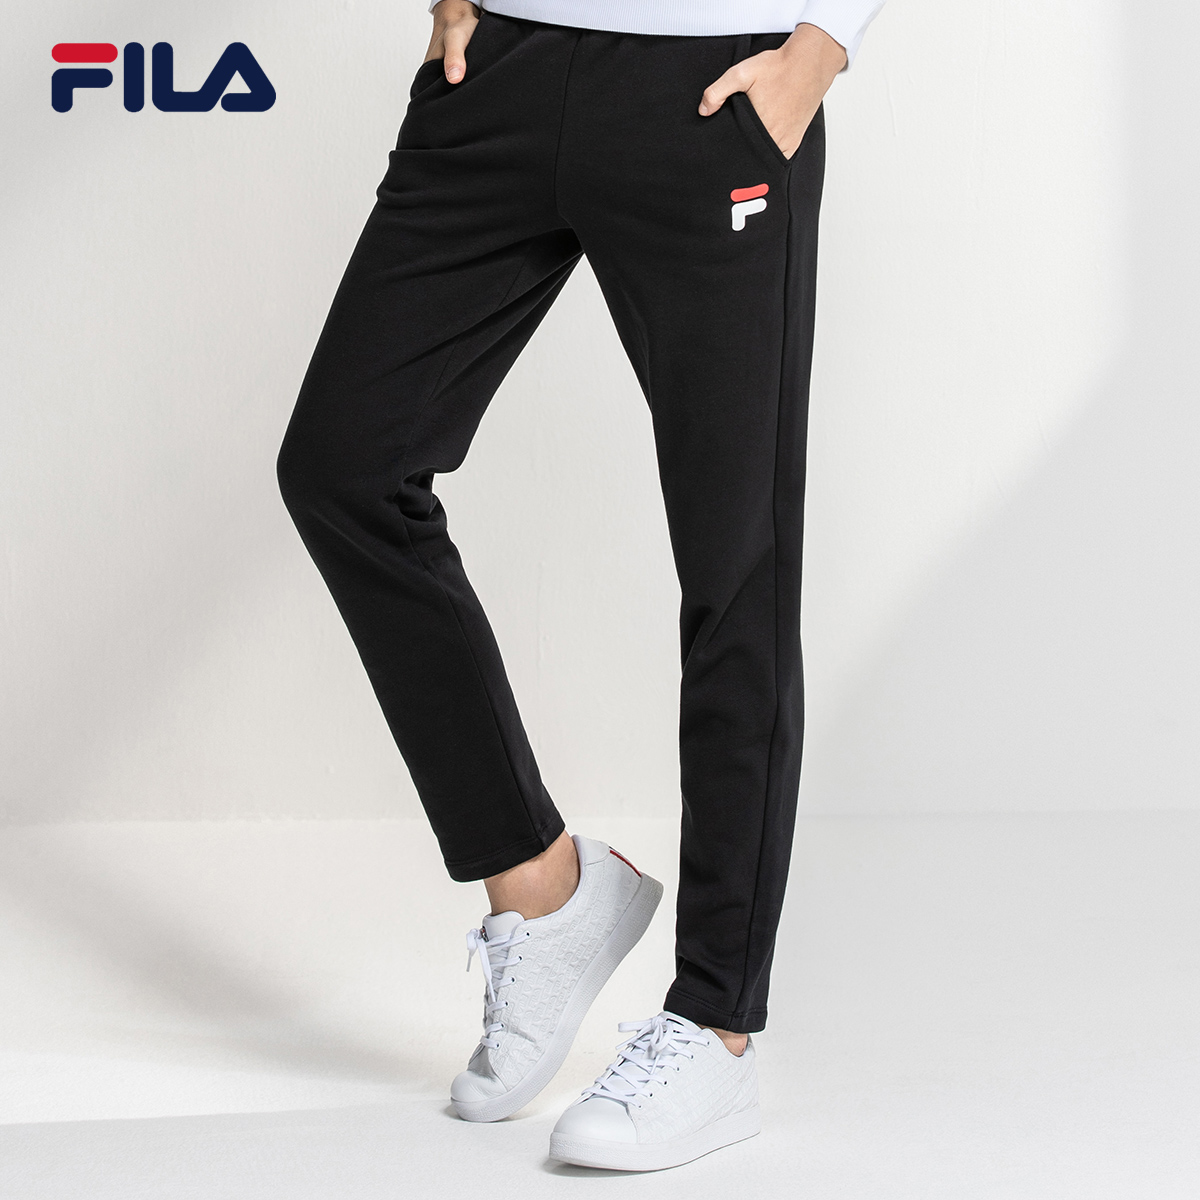 FILA Official Women's Knitted Pants 2020 Autumn and Winter New Straight Casual Sports Ins Pants Trend